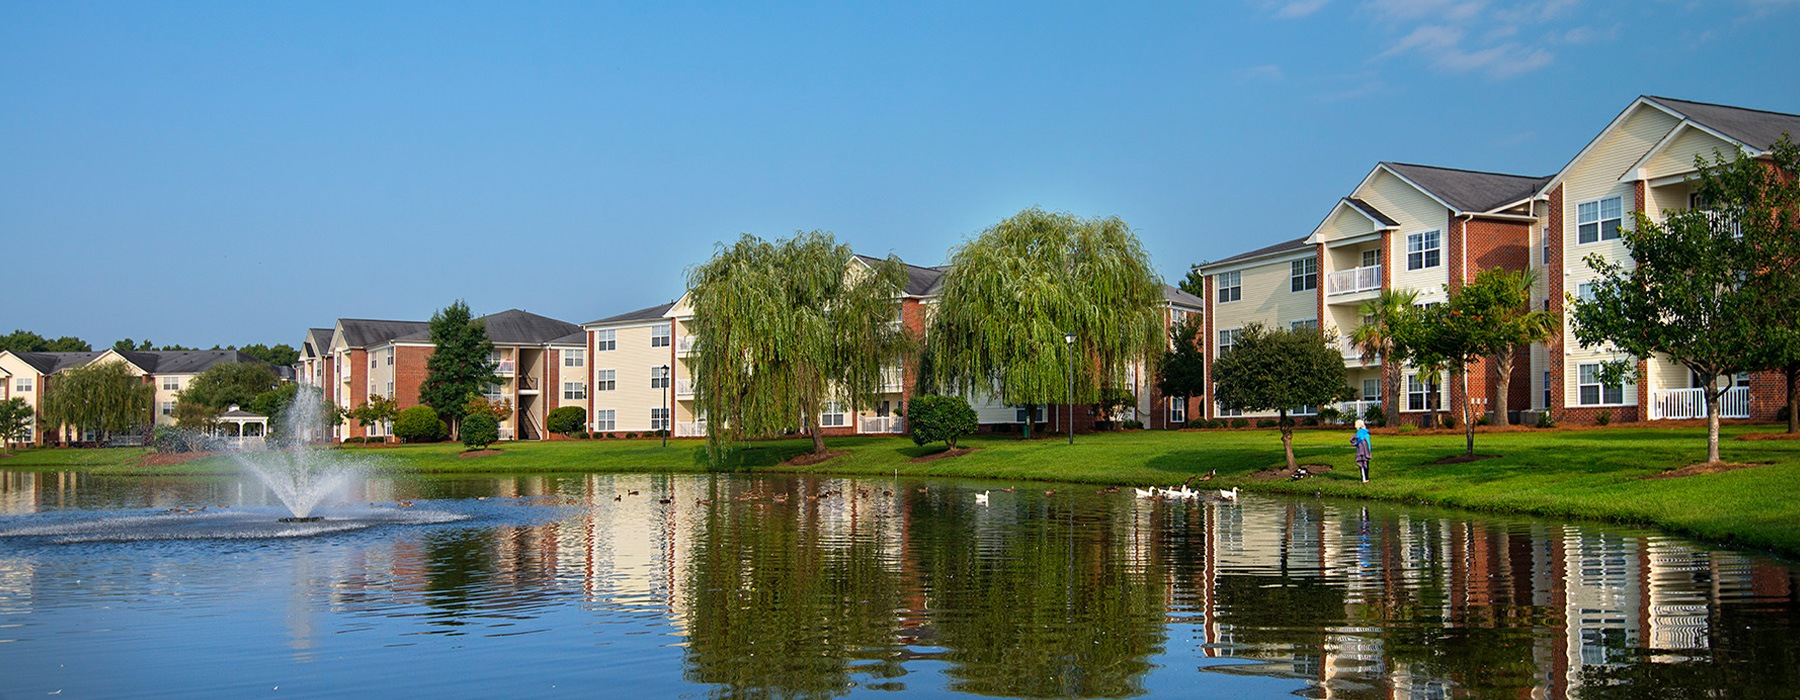 Seaside Grove apartments overlooking a pond with a fountain